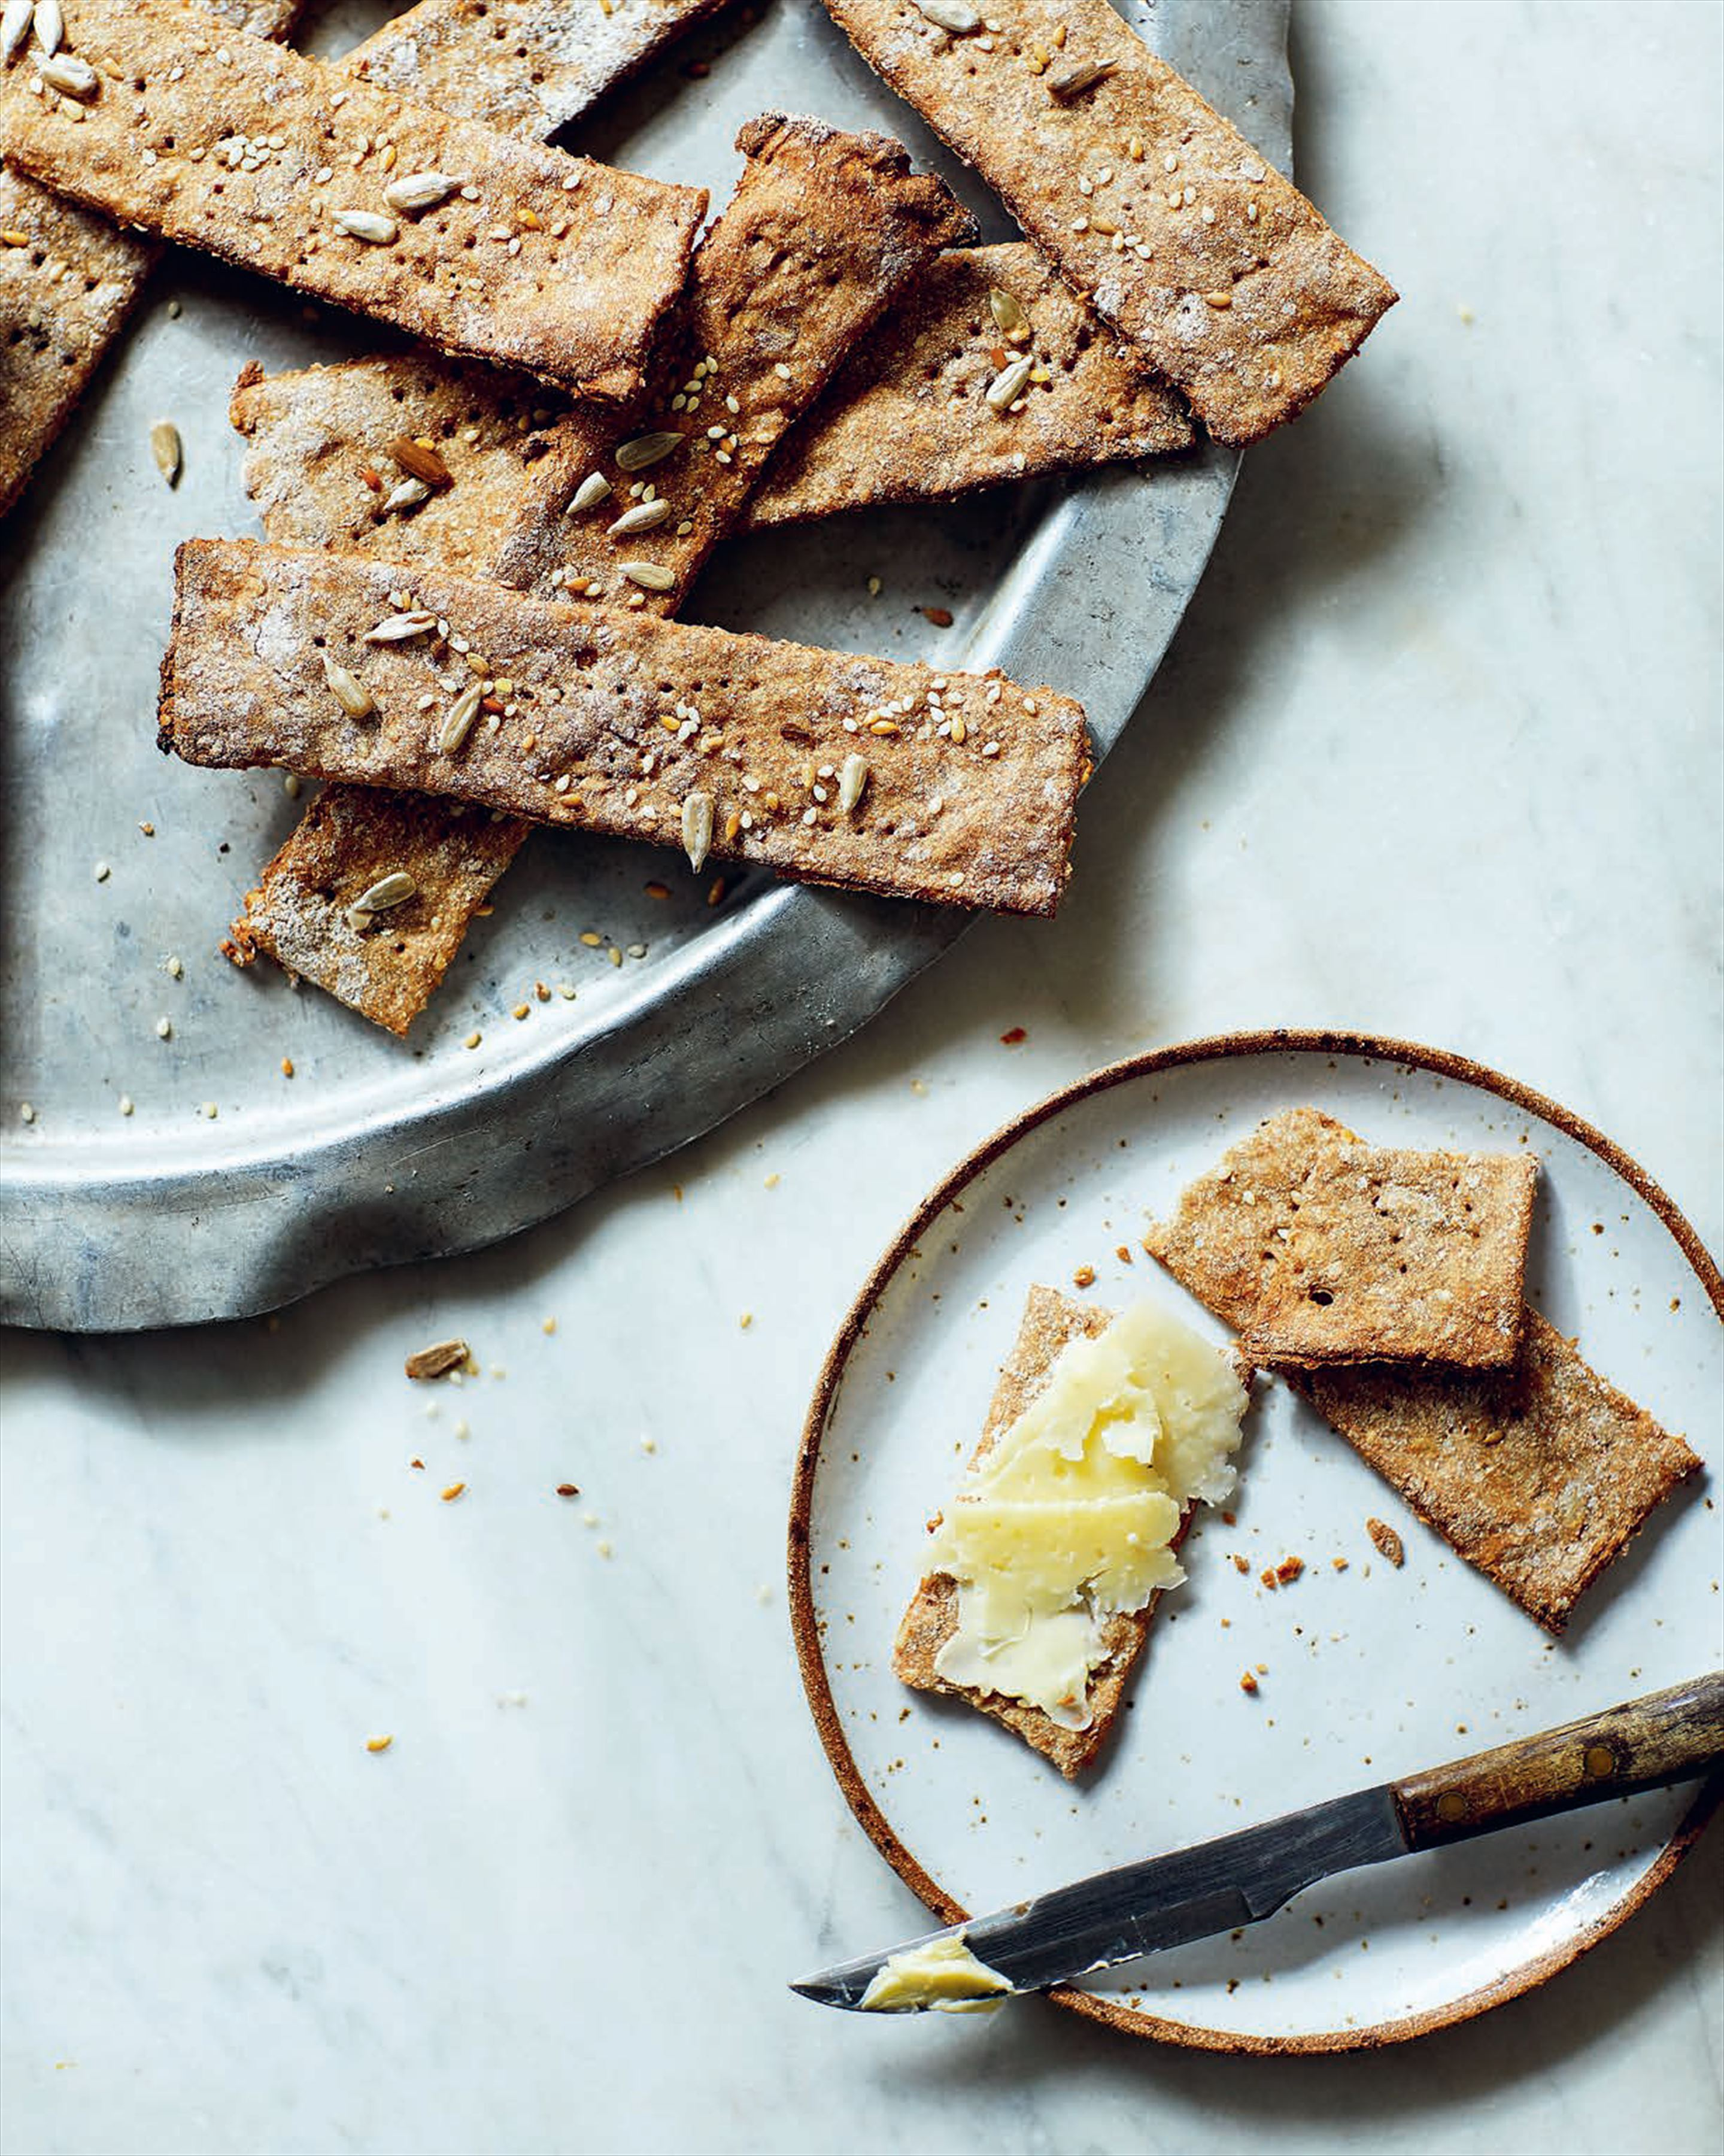 Rye crispbreads to have with anything & everything